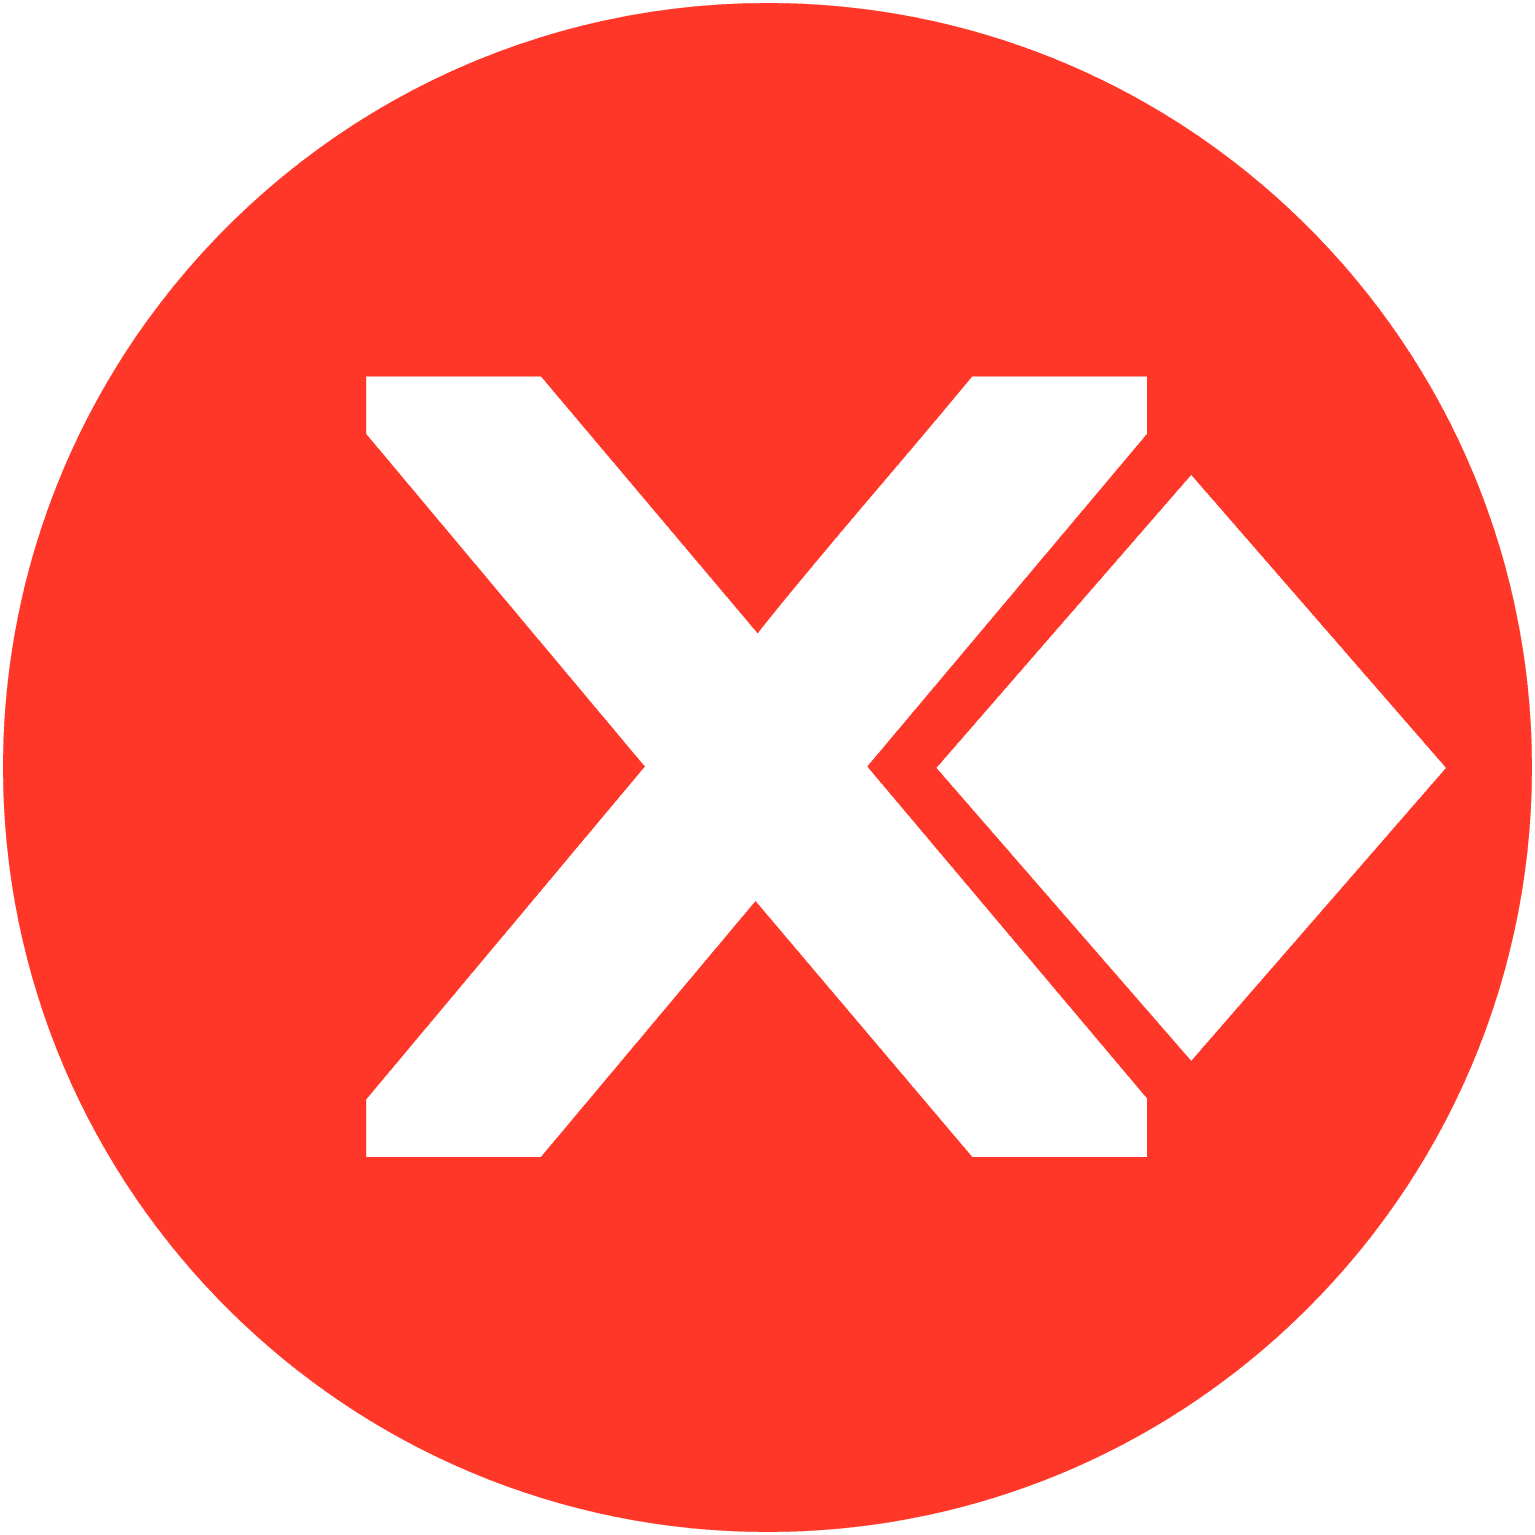 XP Psiphon Apk 2019 V8 With Config File MTN - Zpykiostech | VPNs in